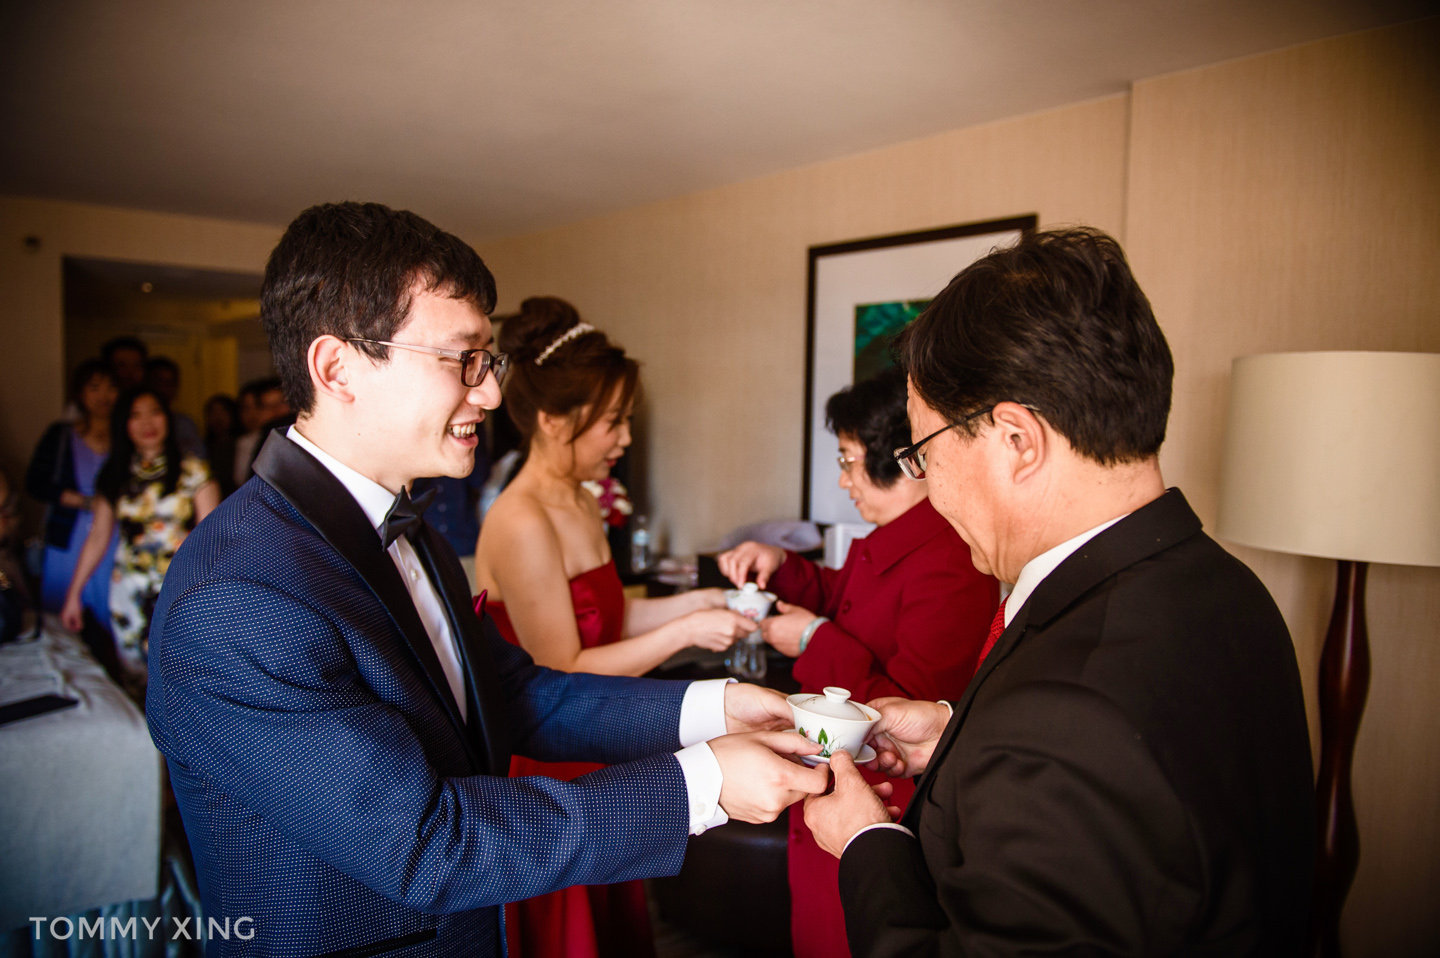 Los Angeles Wedding Photographer 洛杉矶婚礼婚纱摄影师 Tommy Xing-57.JPG